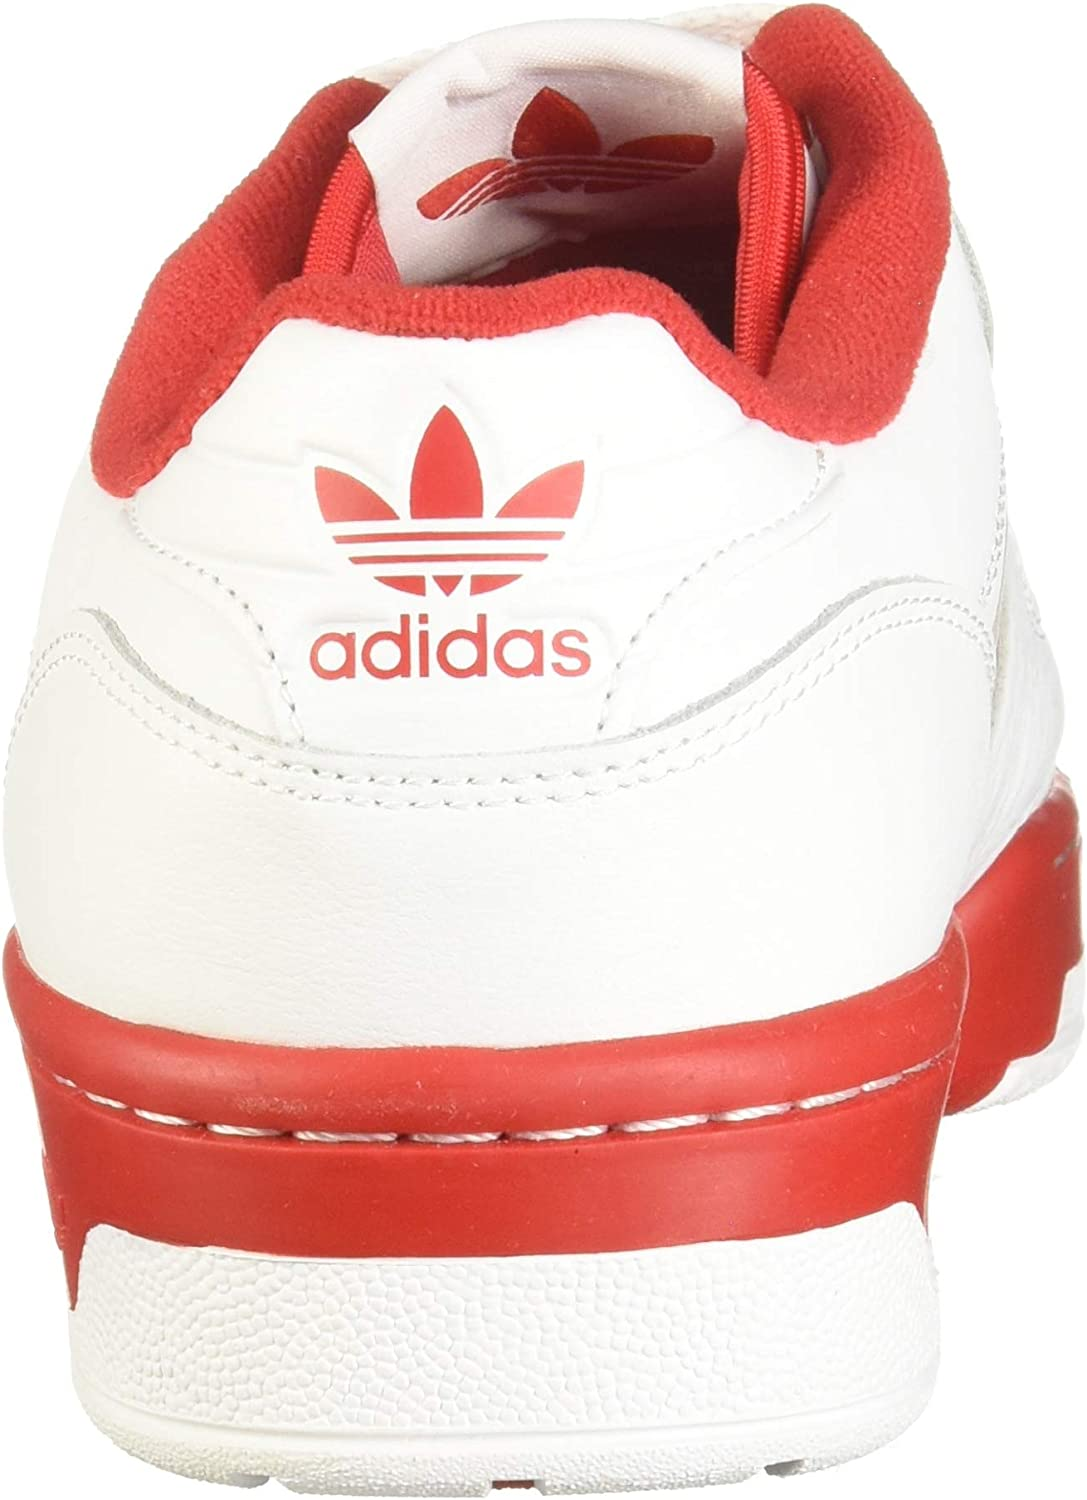 adidas Rivalry Low Chaussures